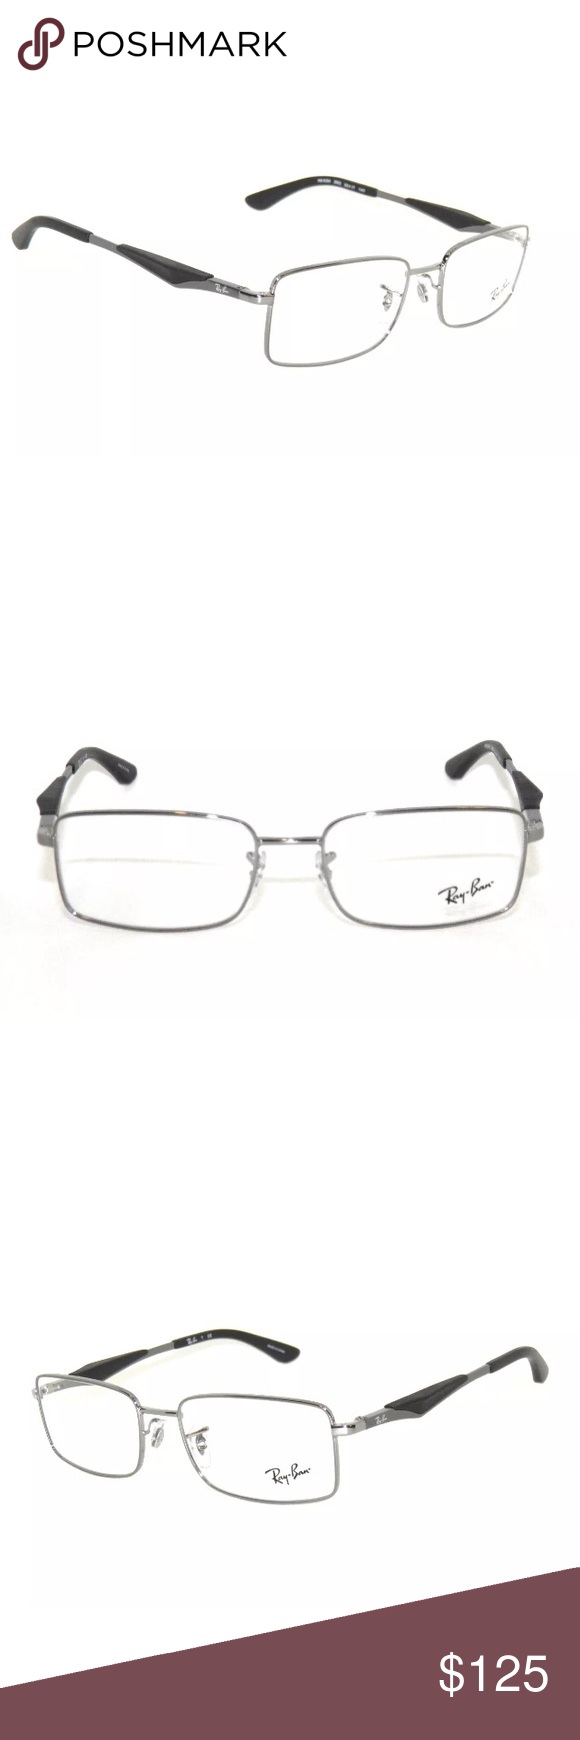 0617ab5eb9a0 ... ireland ray ban eyeglasses 6284 gunmetal black frame new with clear lens  comes with ray 14d3a